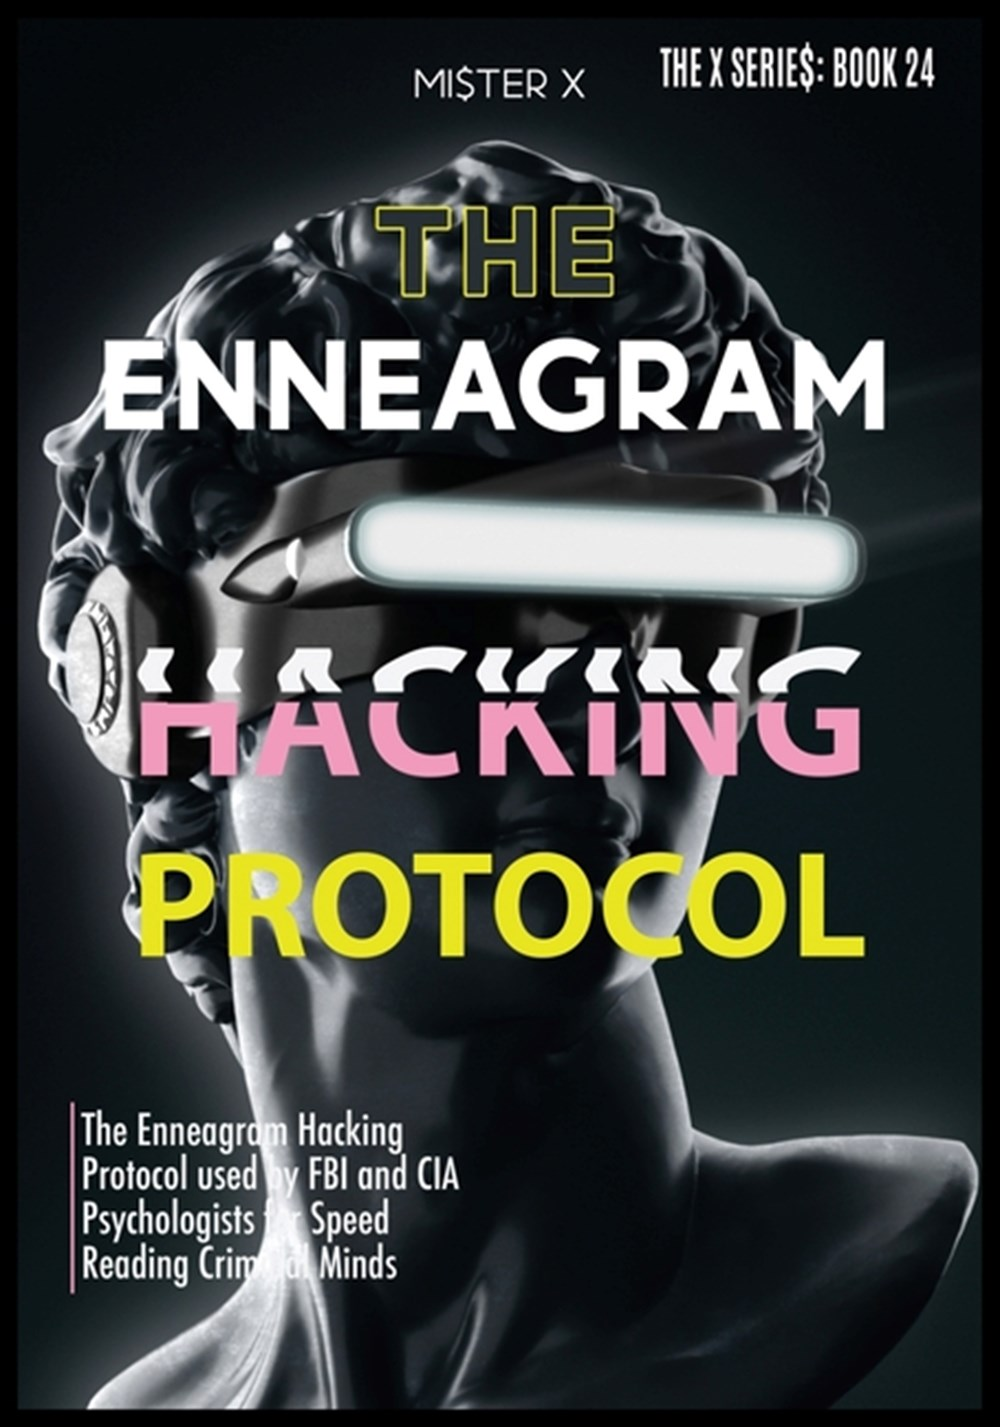 Enneagram The Enneagram Hacking Protocol used by FBI and CIA Psychologists for Speed Reading Crimina